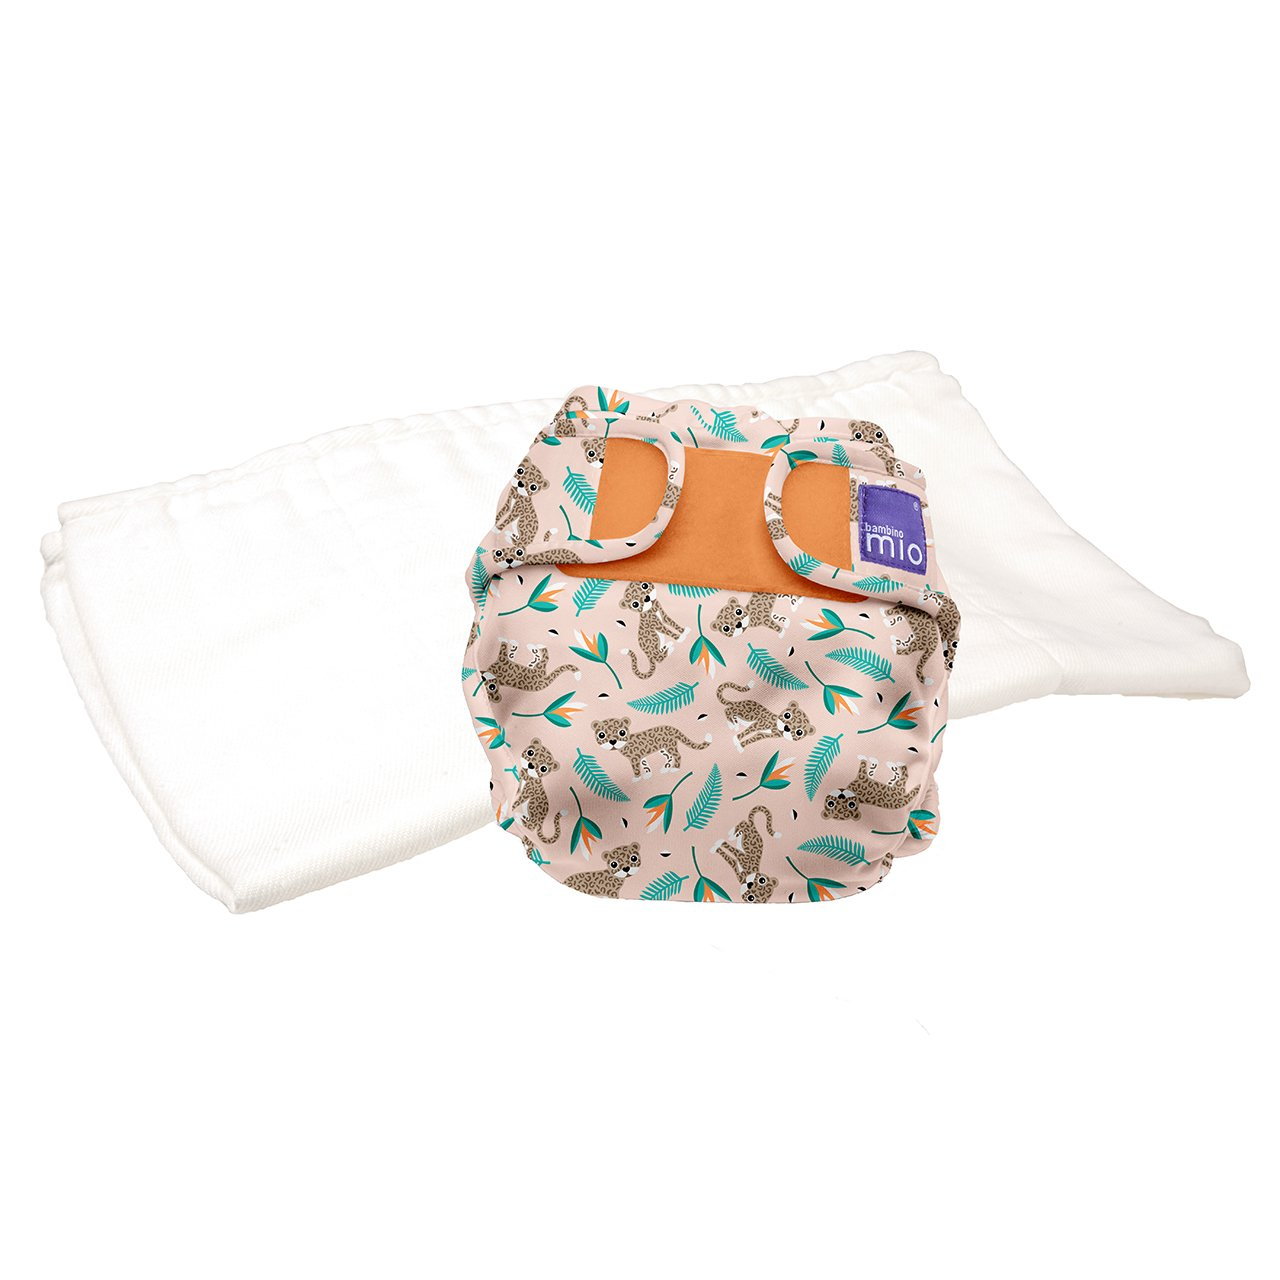 Bambino Mio, mioduo Two-Piece Cloth Diaper, Wild cat, Size 2 (21lbs+)